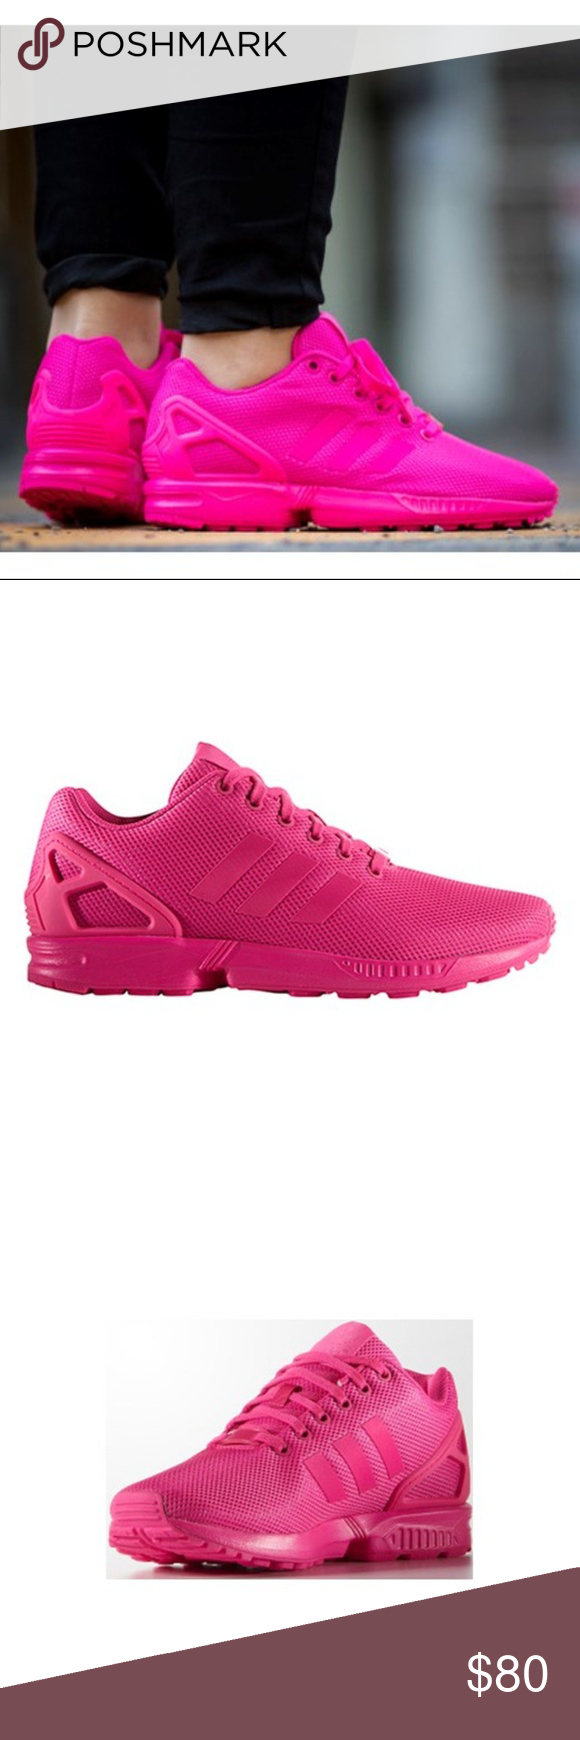 purchase cheap 64abe 8834c Adidas Originals ZX Flux Shock Pink DS Size 10 New With Out ...